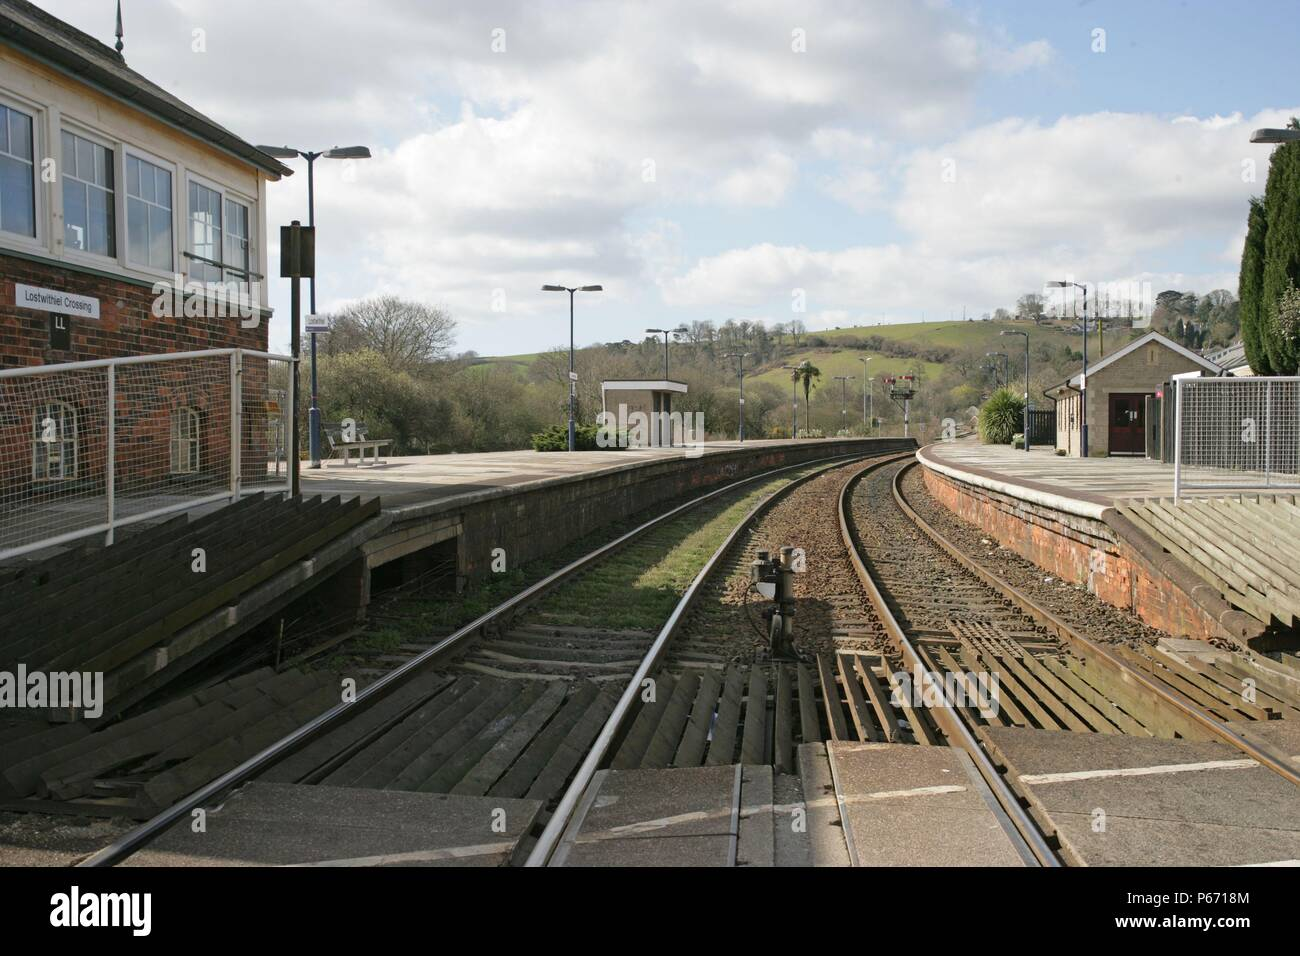 View of Lostwithiel station, Cornwall, from the level crossing at the end of the platform with the signal box on the left. 2006 - Stock Image